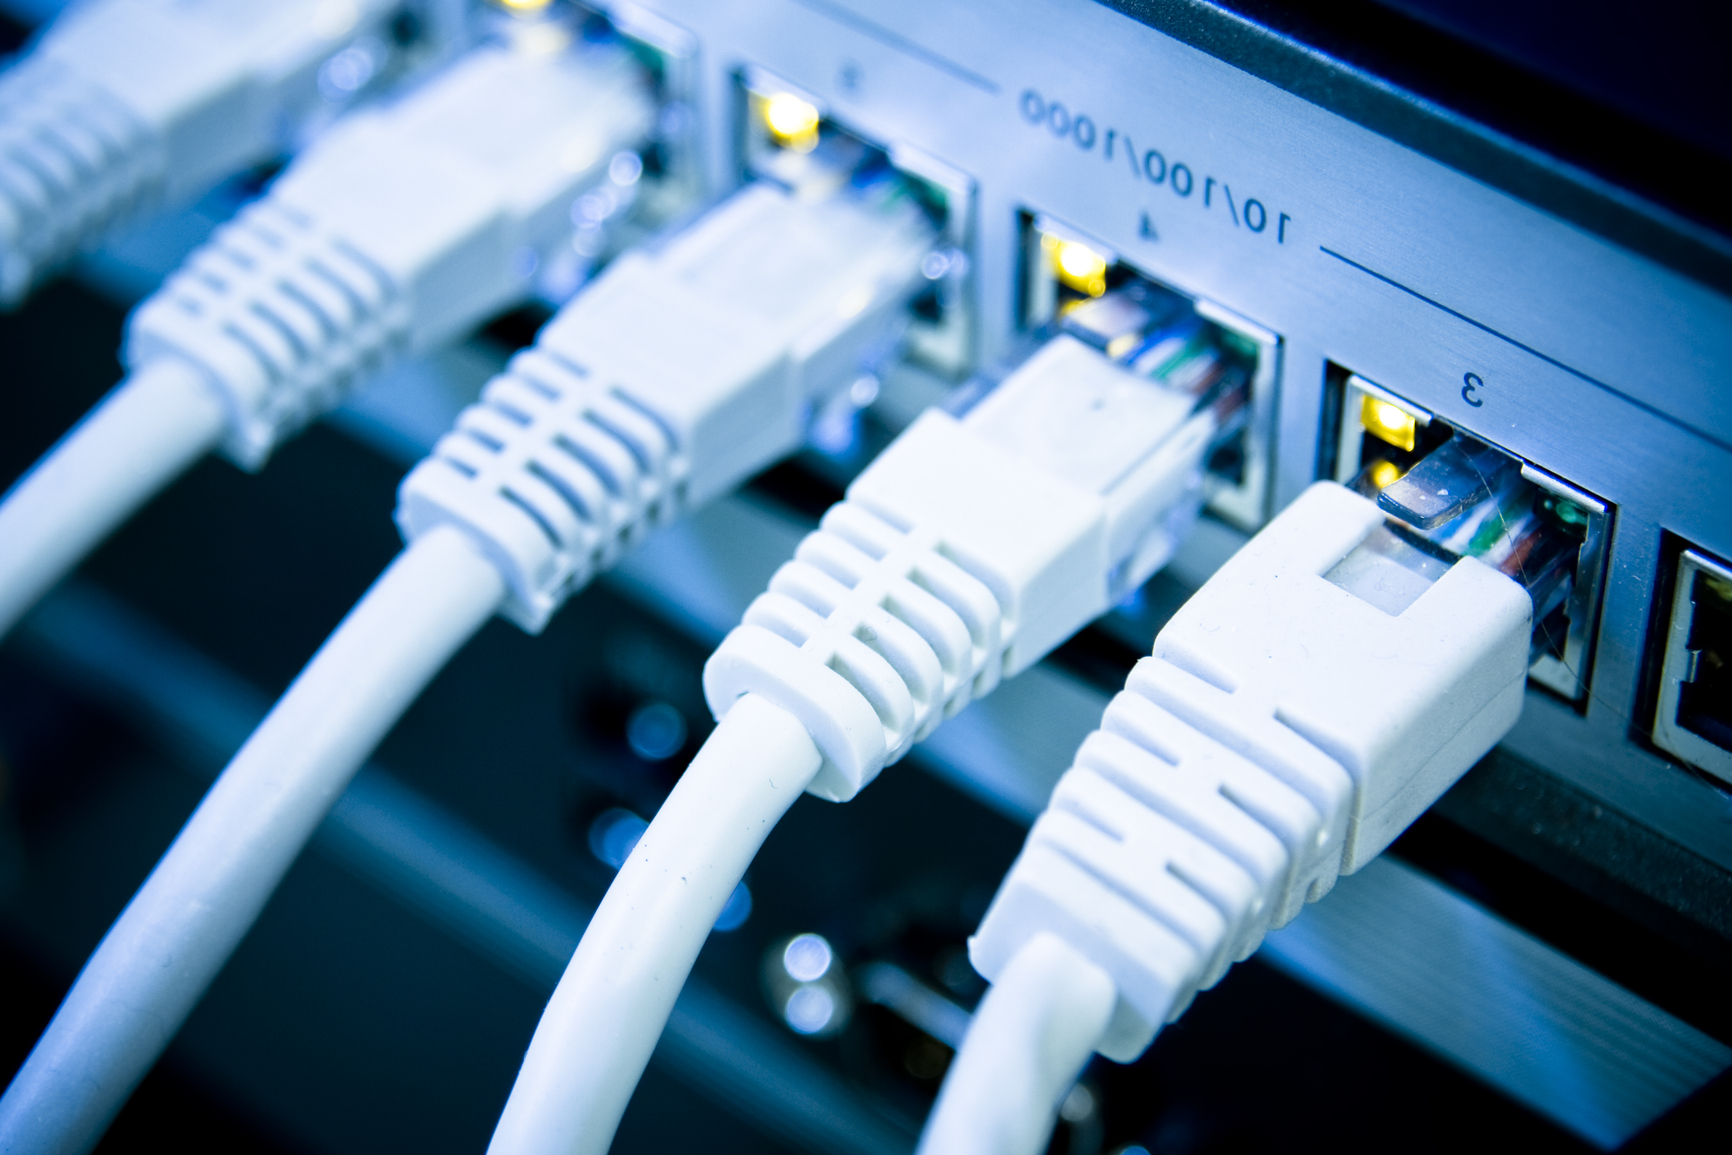 Network Cables Connected To Switch Computer Initiatives